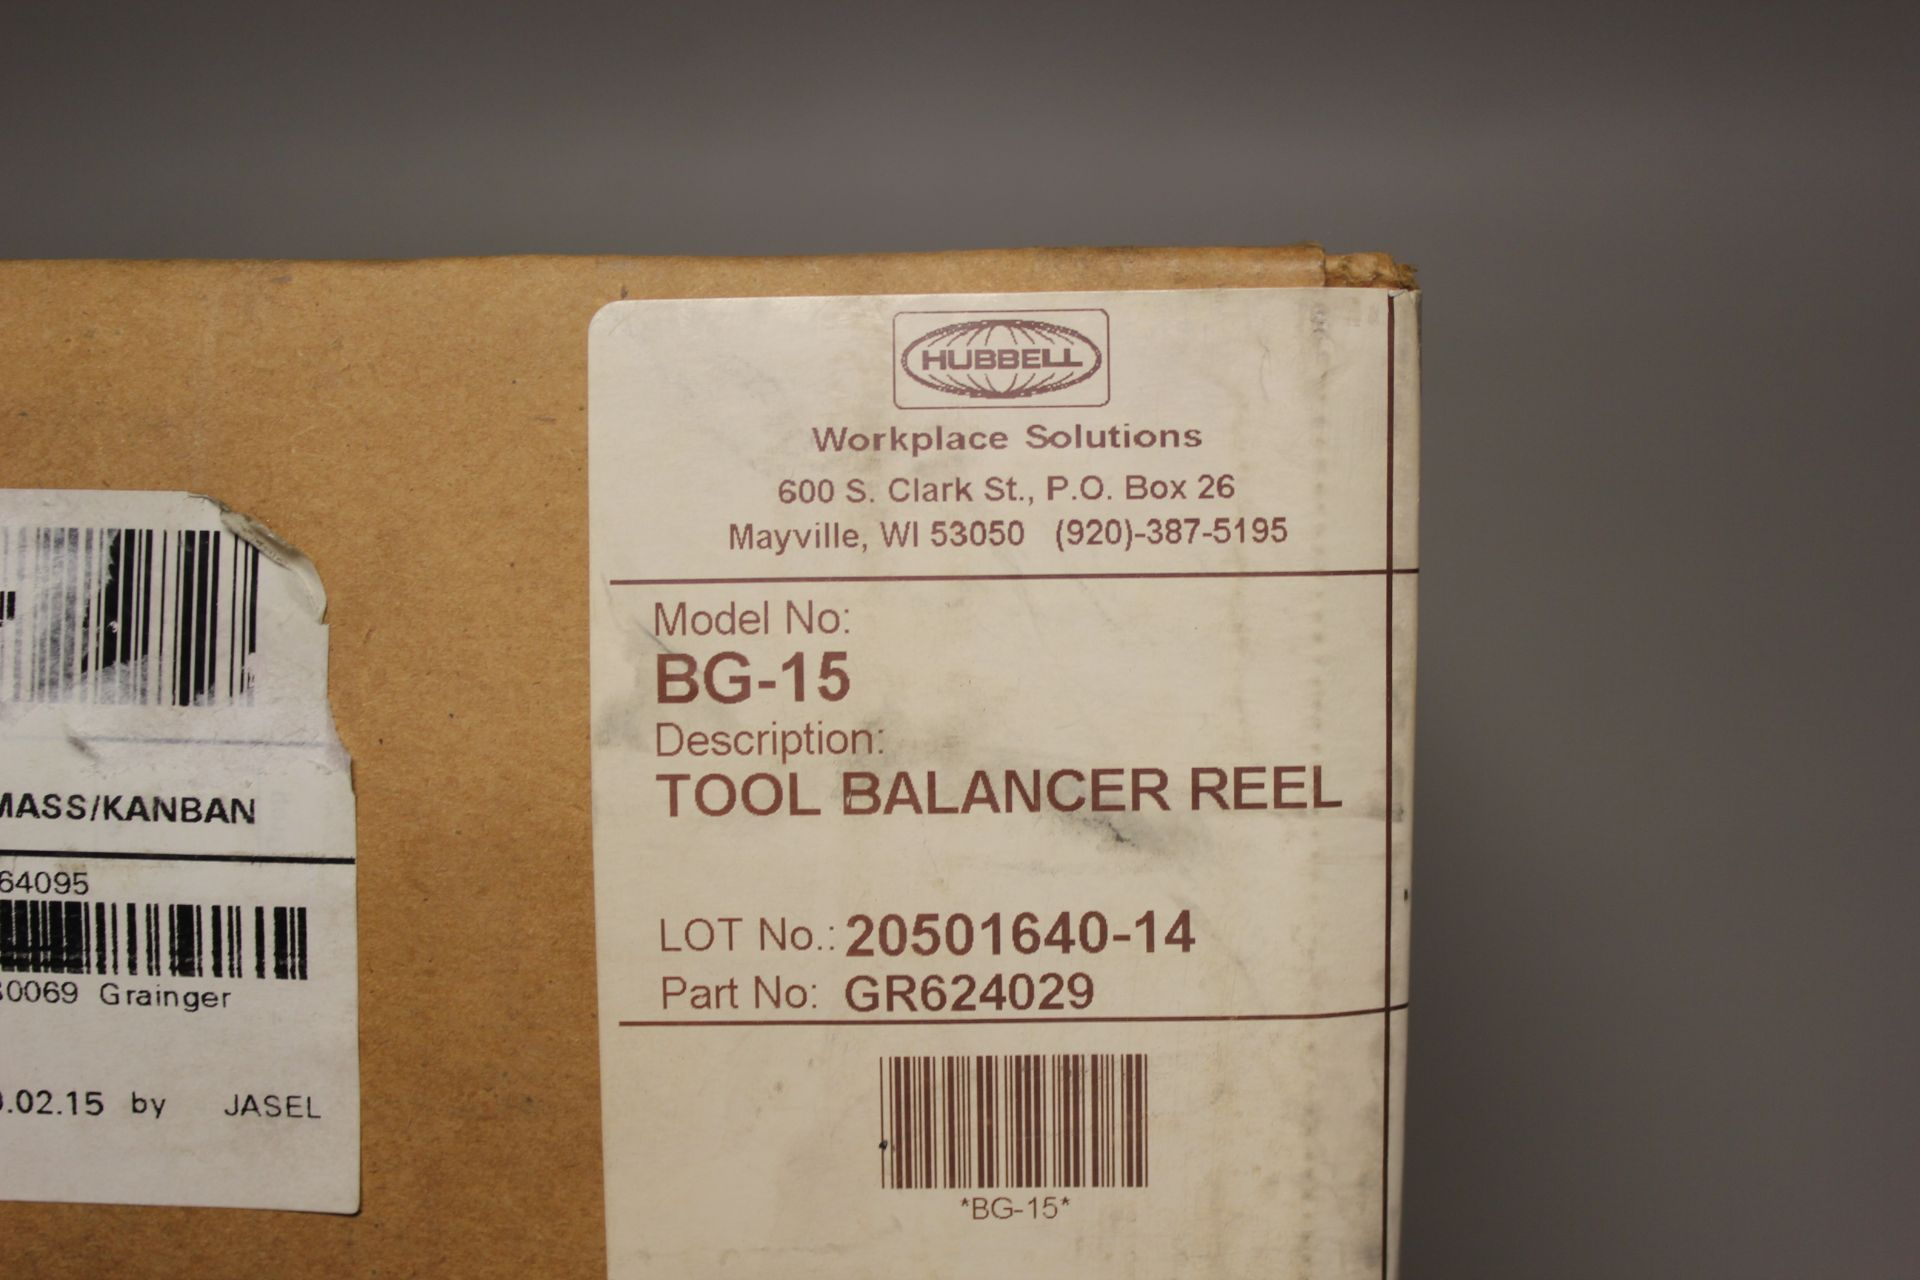 NEW HUBBELL TOOL BALANCER REEL - Image 3 of 4